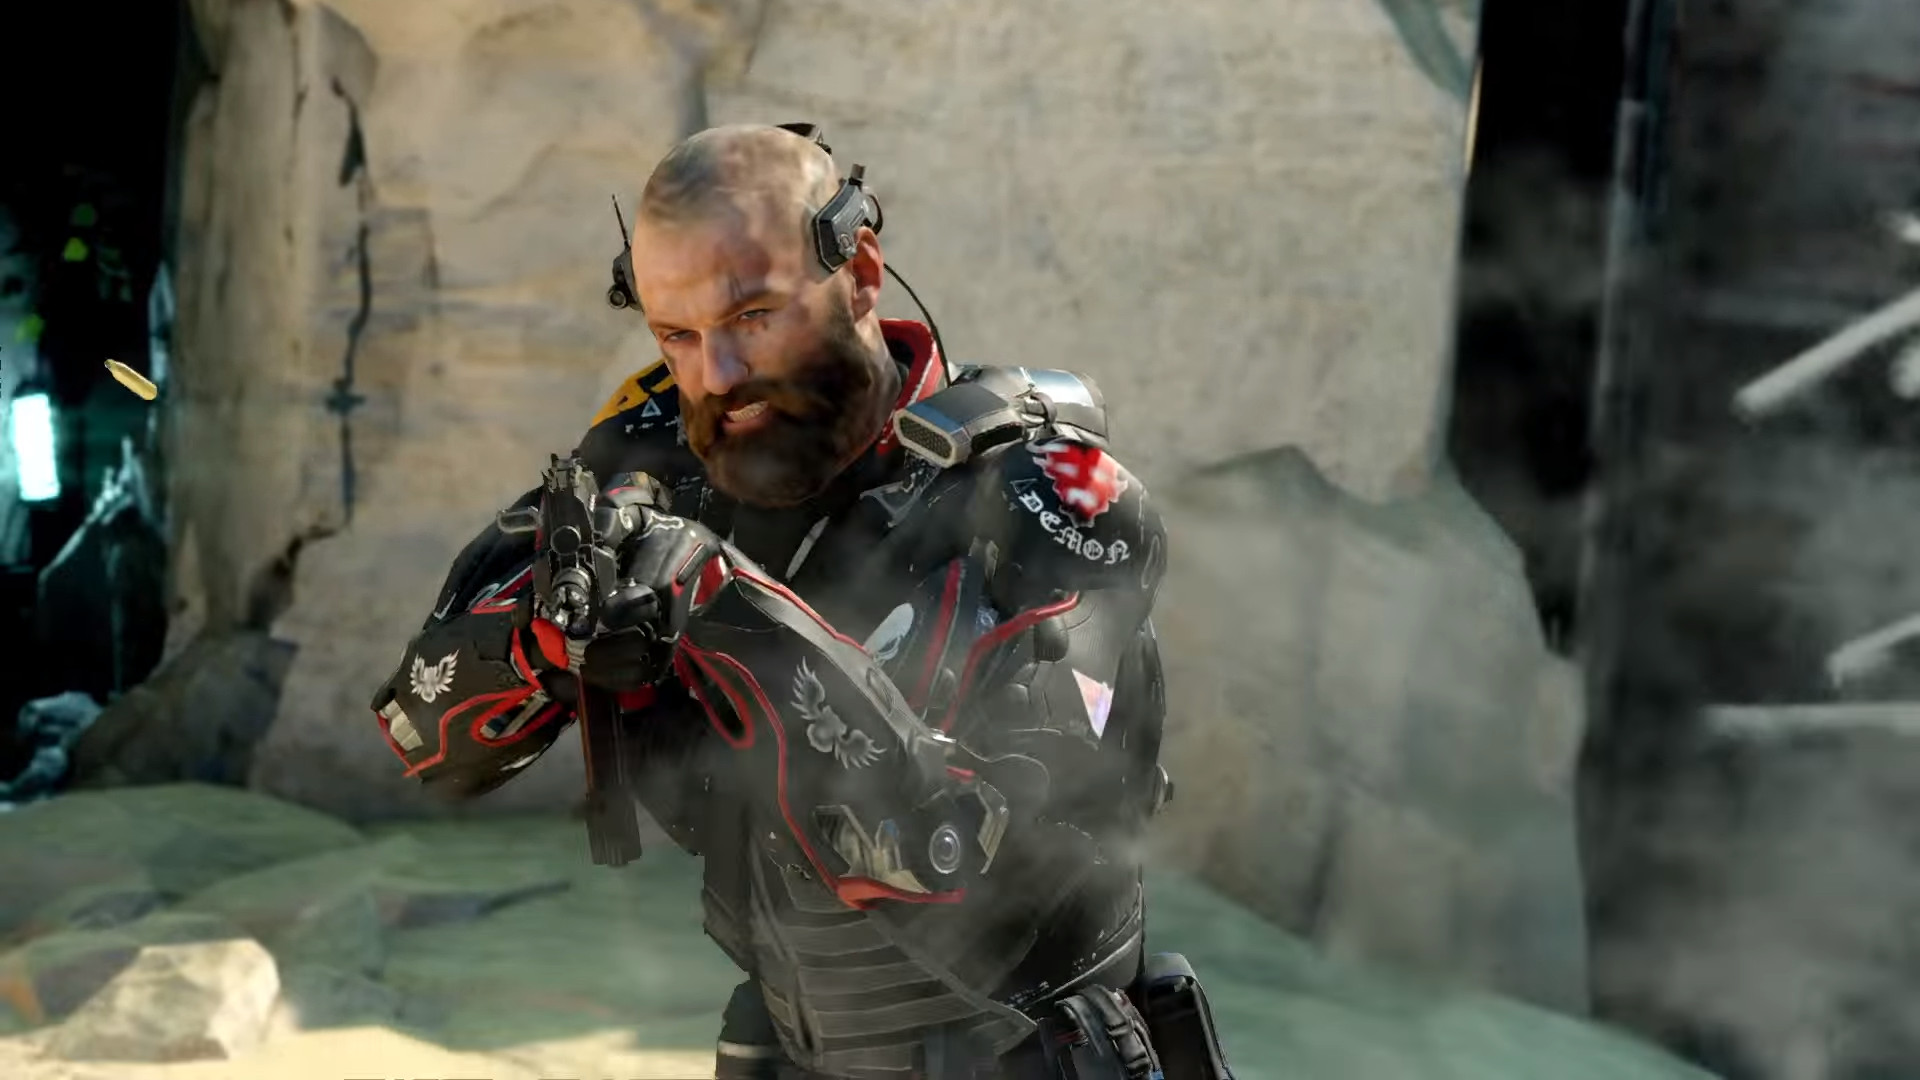 Check out Black Ops 3: Eclipse DLC's new maps and zombie